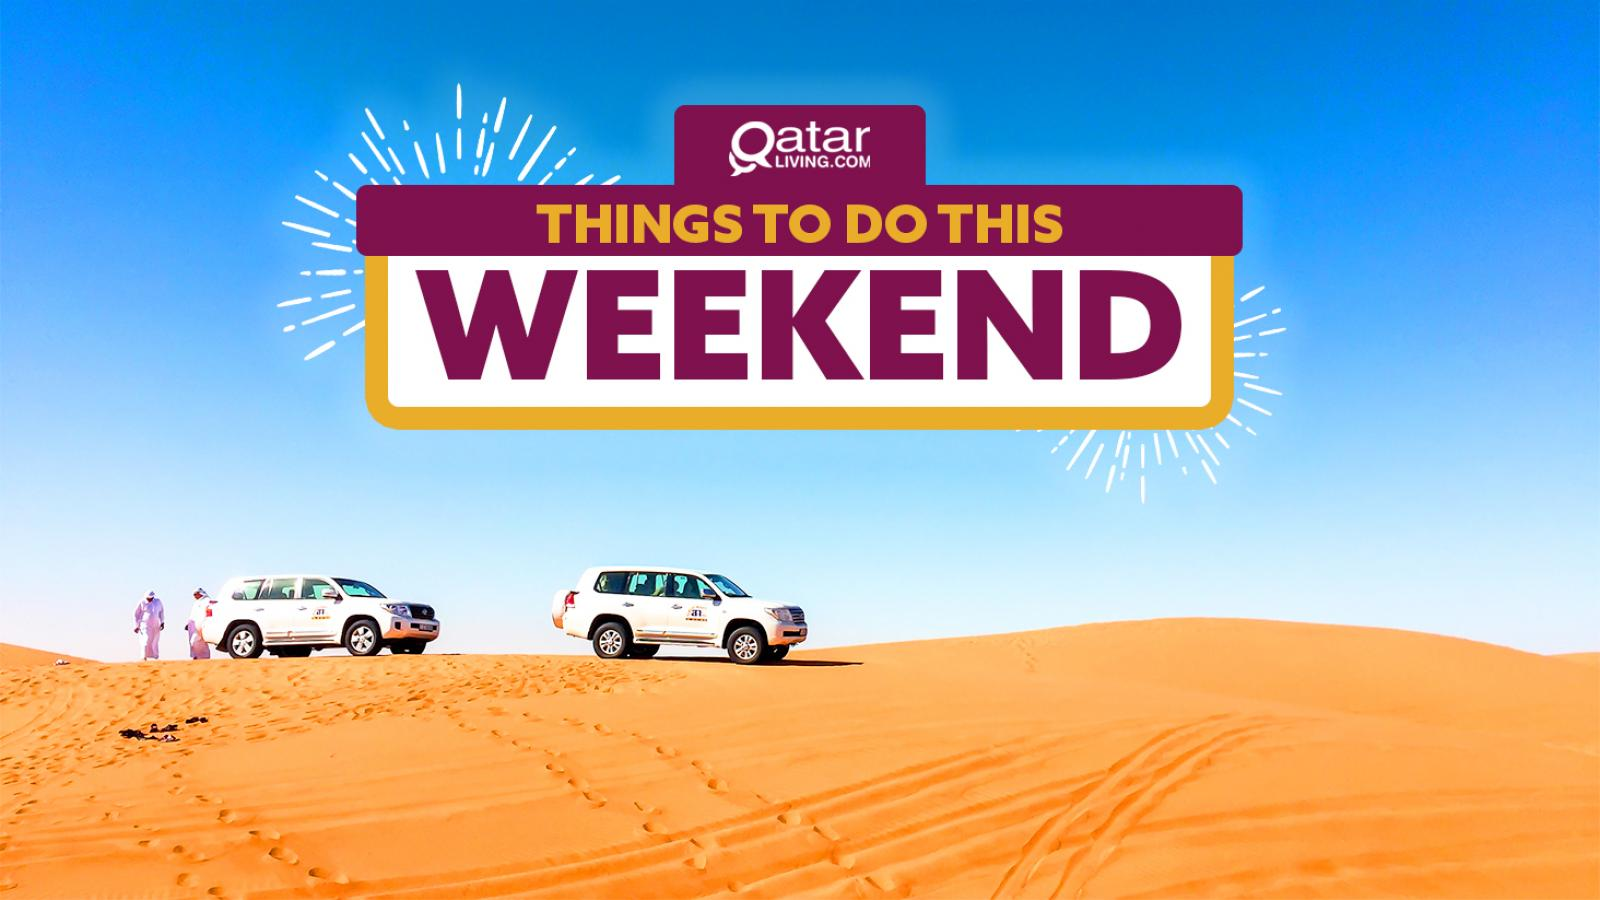 Things to do in Qatar this weekend: January 16-18